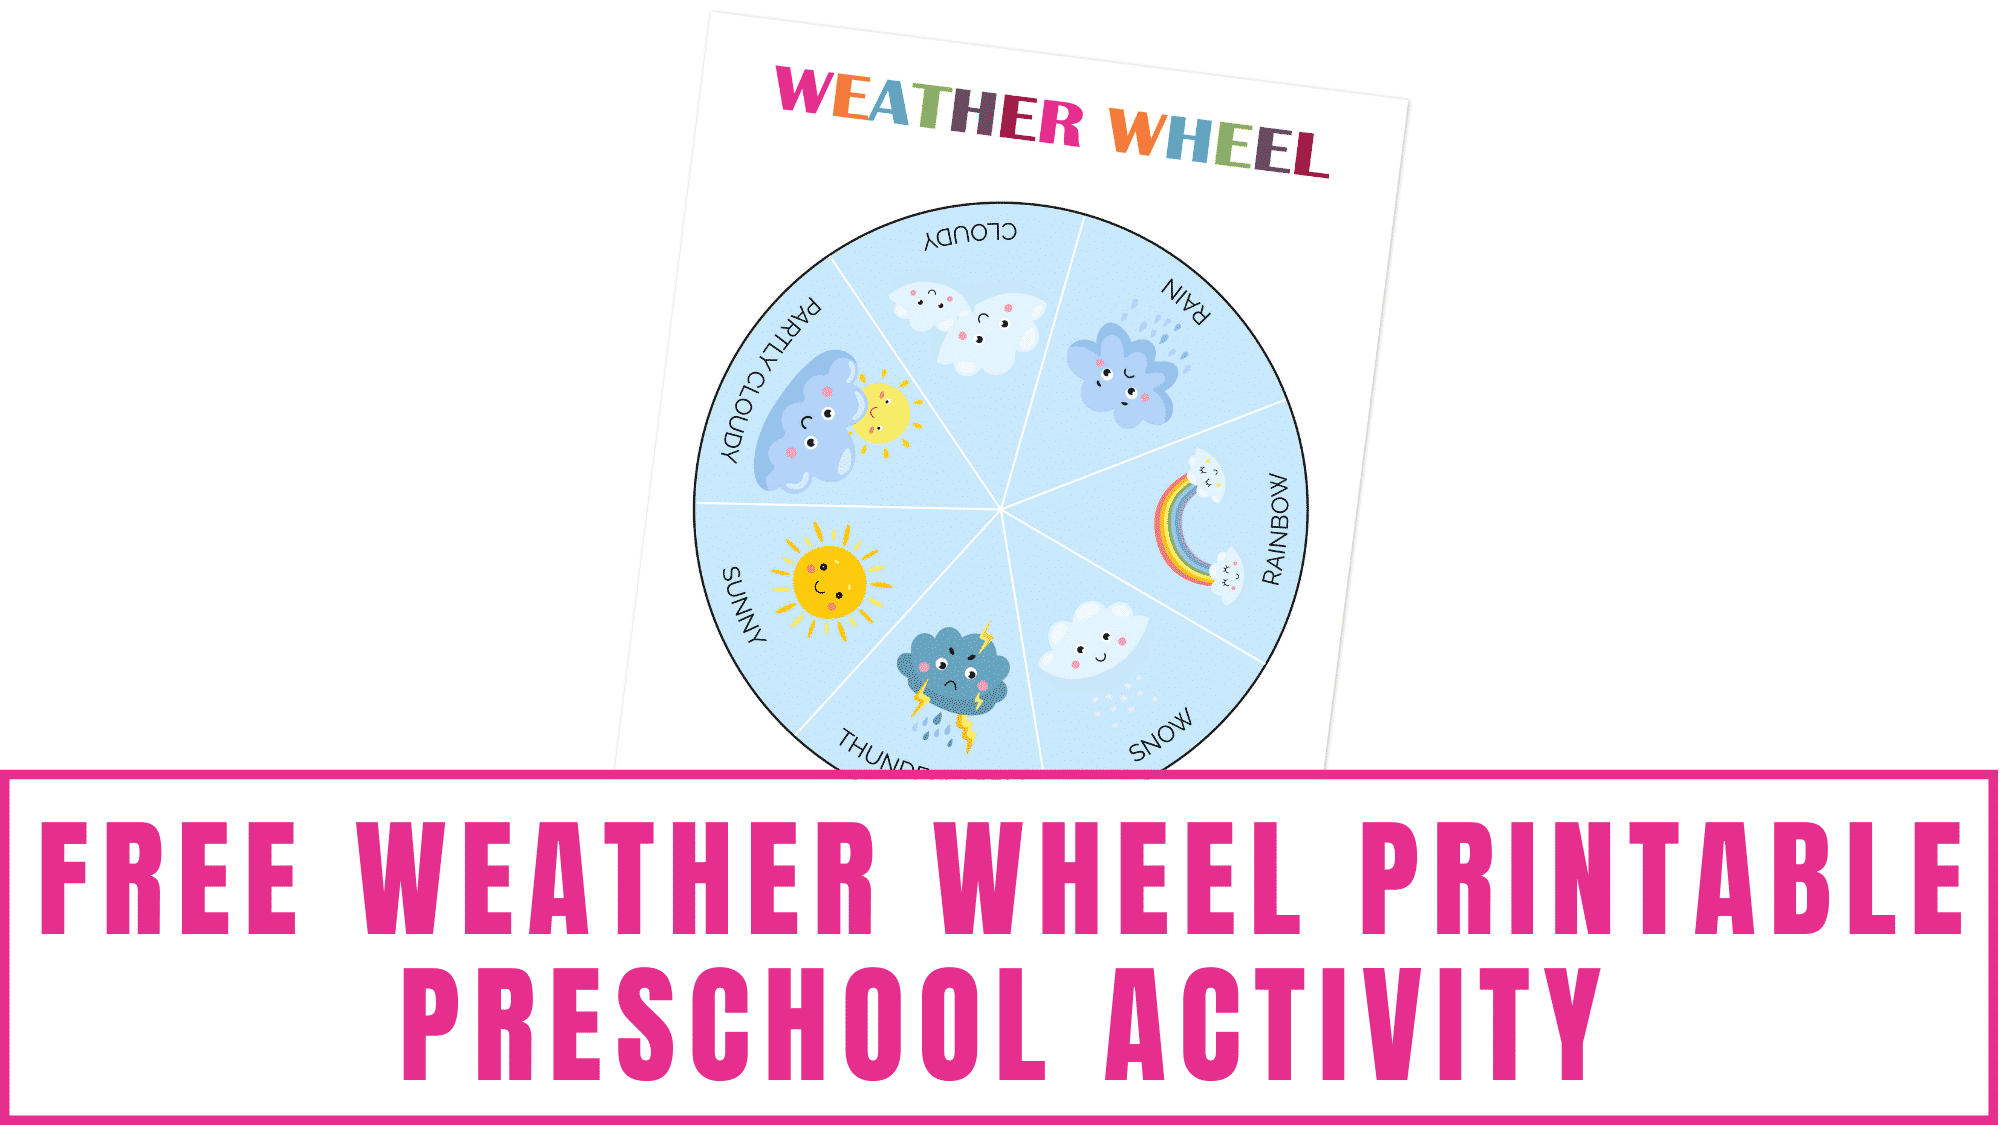 free weather wheel printable preschool activity